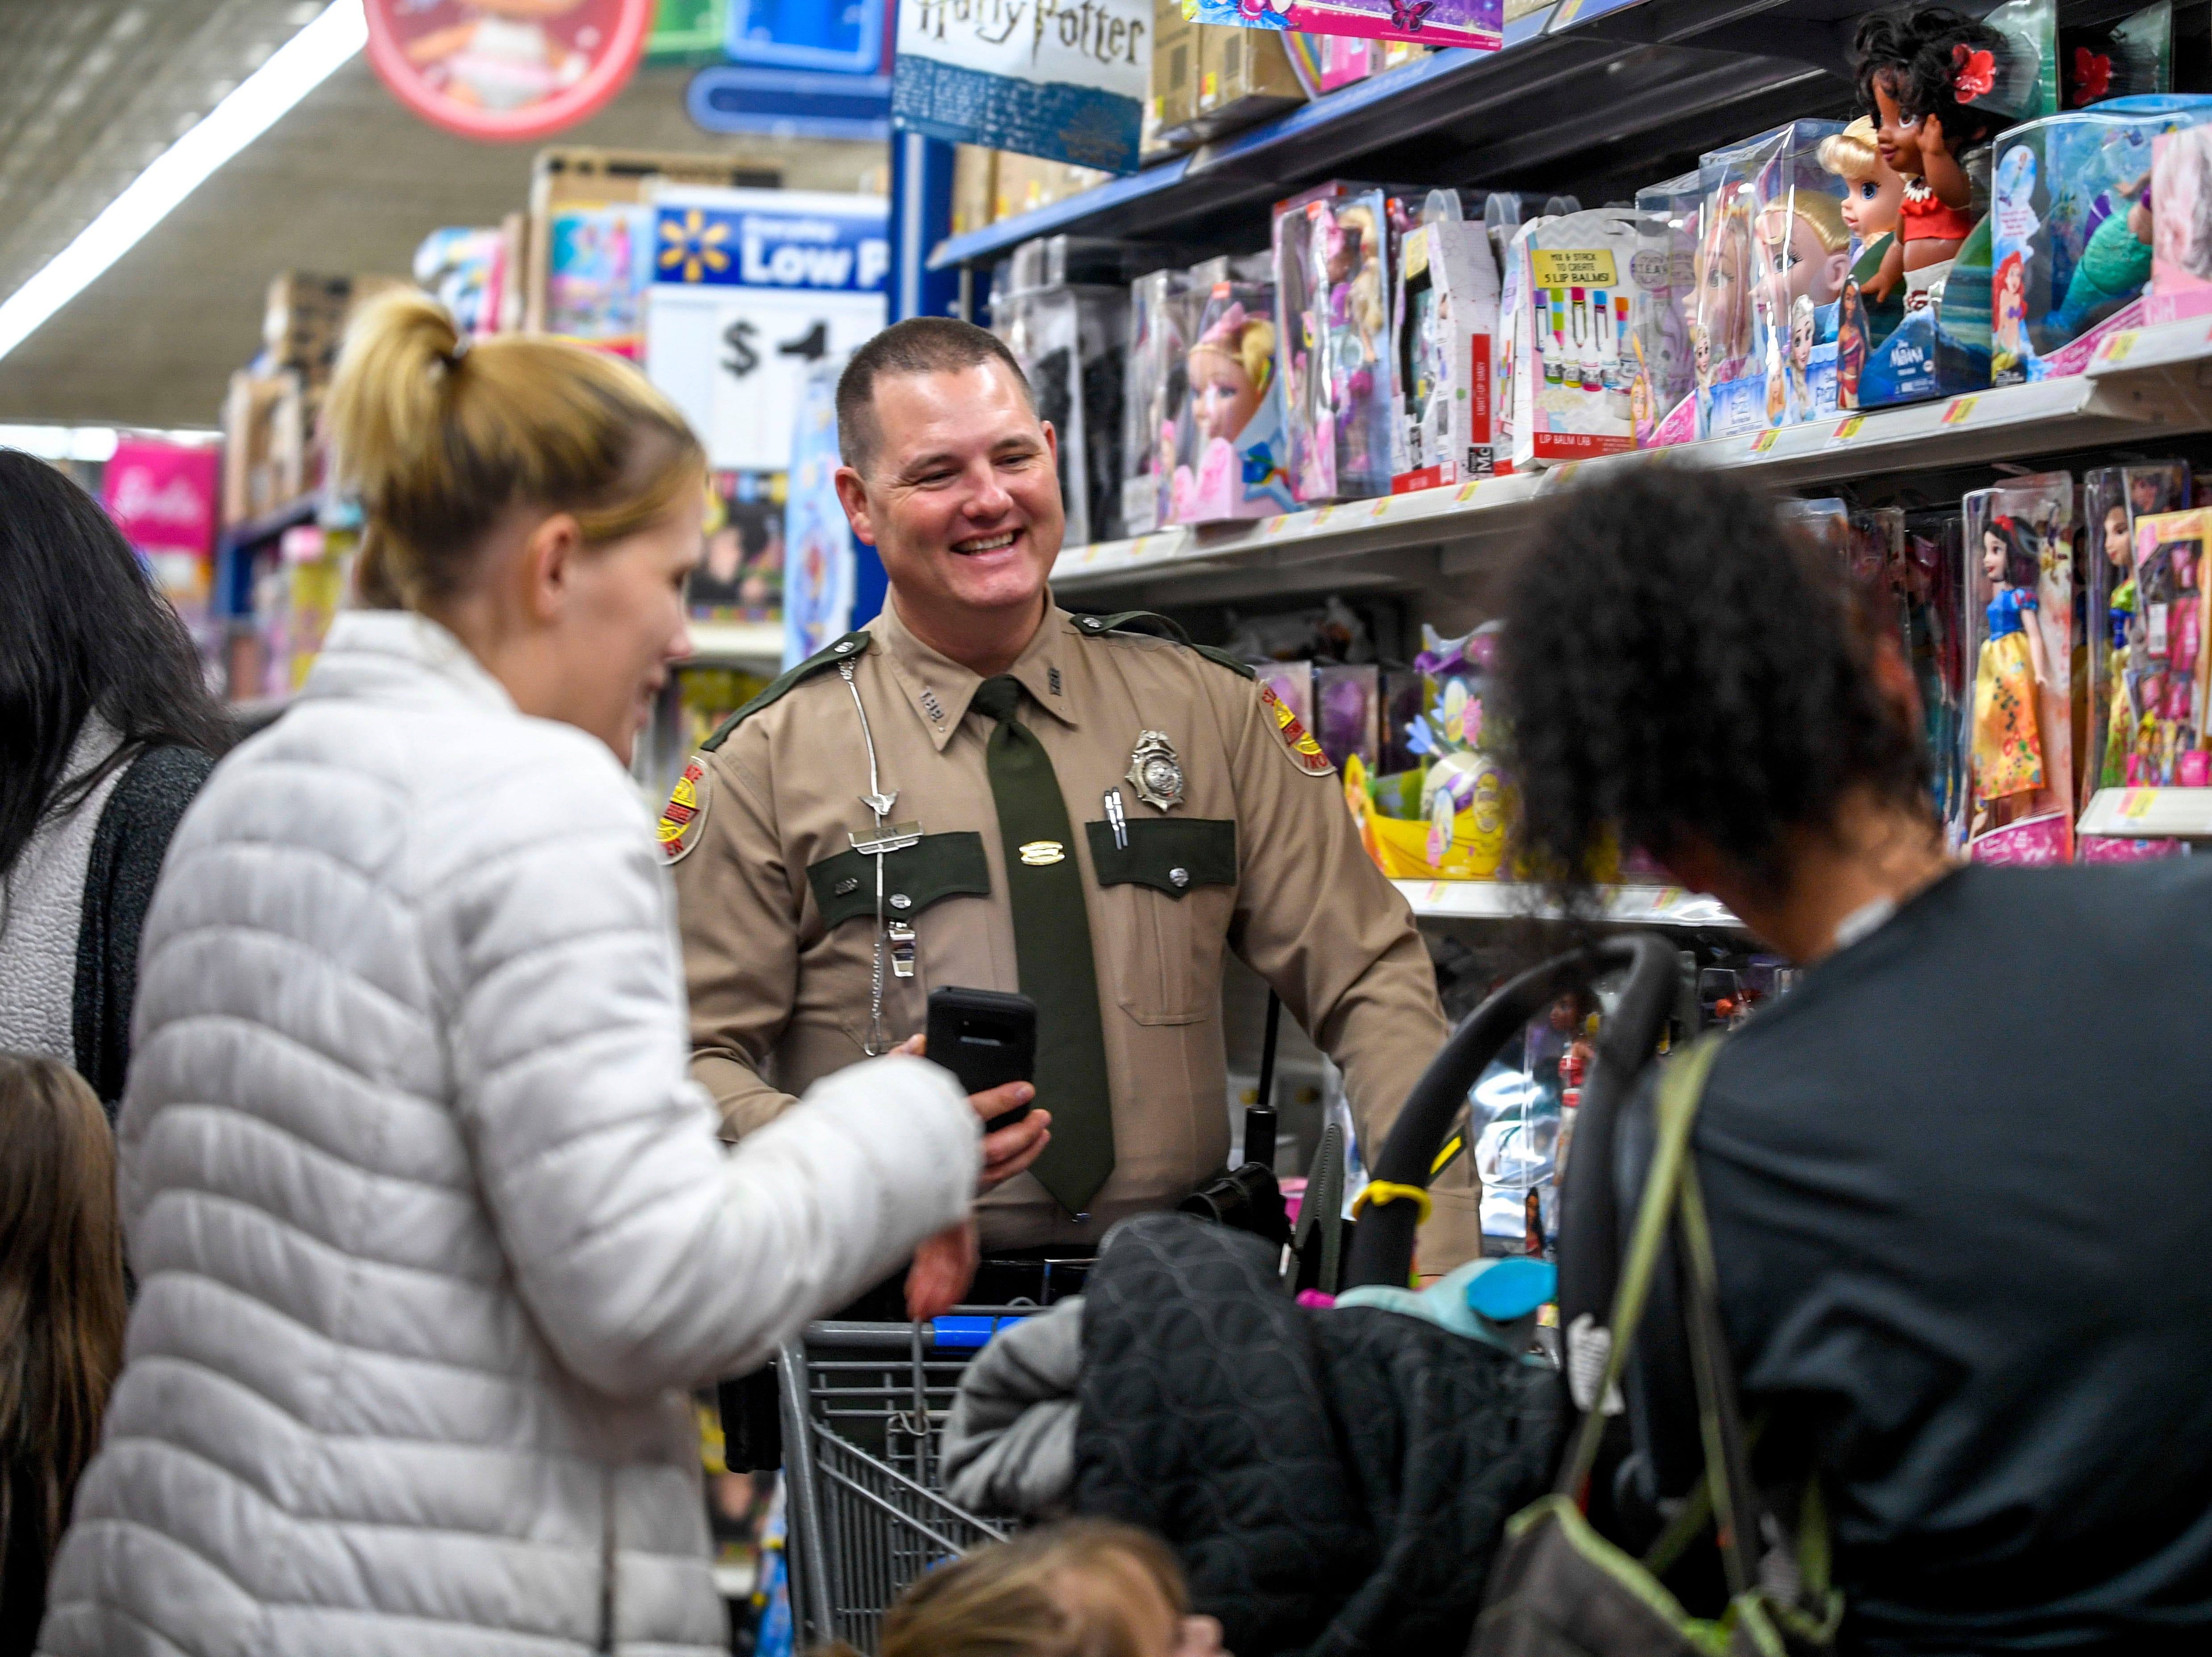 Trooper Cook helps his partners out with shopping for toys during shopping time for the annual Shop with a Cop program at Walmart in Milan, Tenn., on Thursday, Dec. 13, 2018.